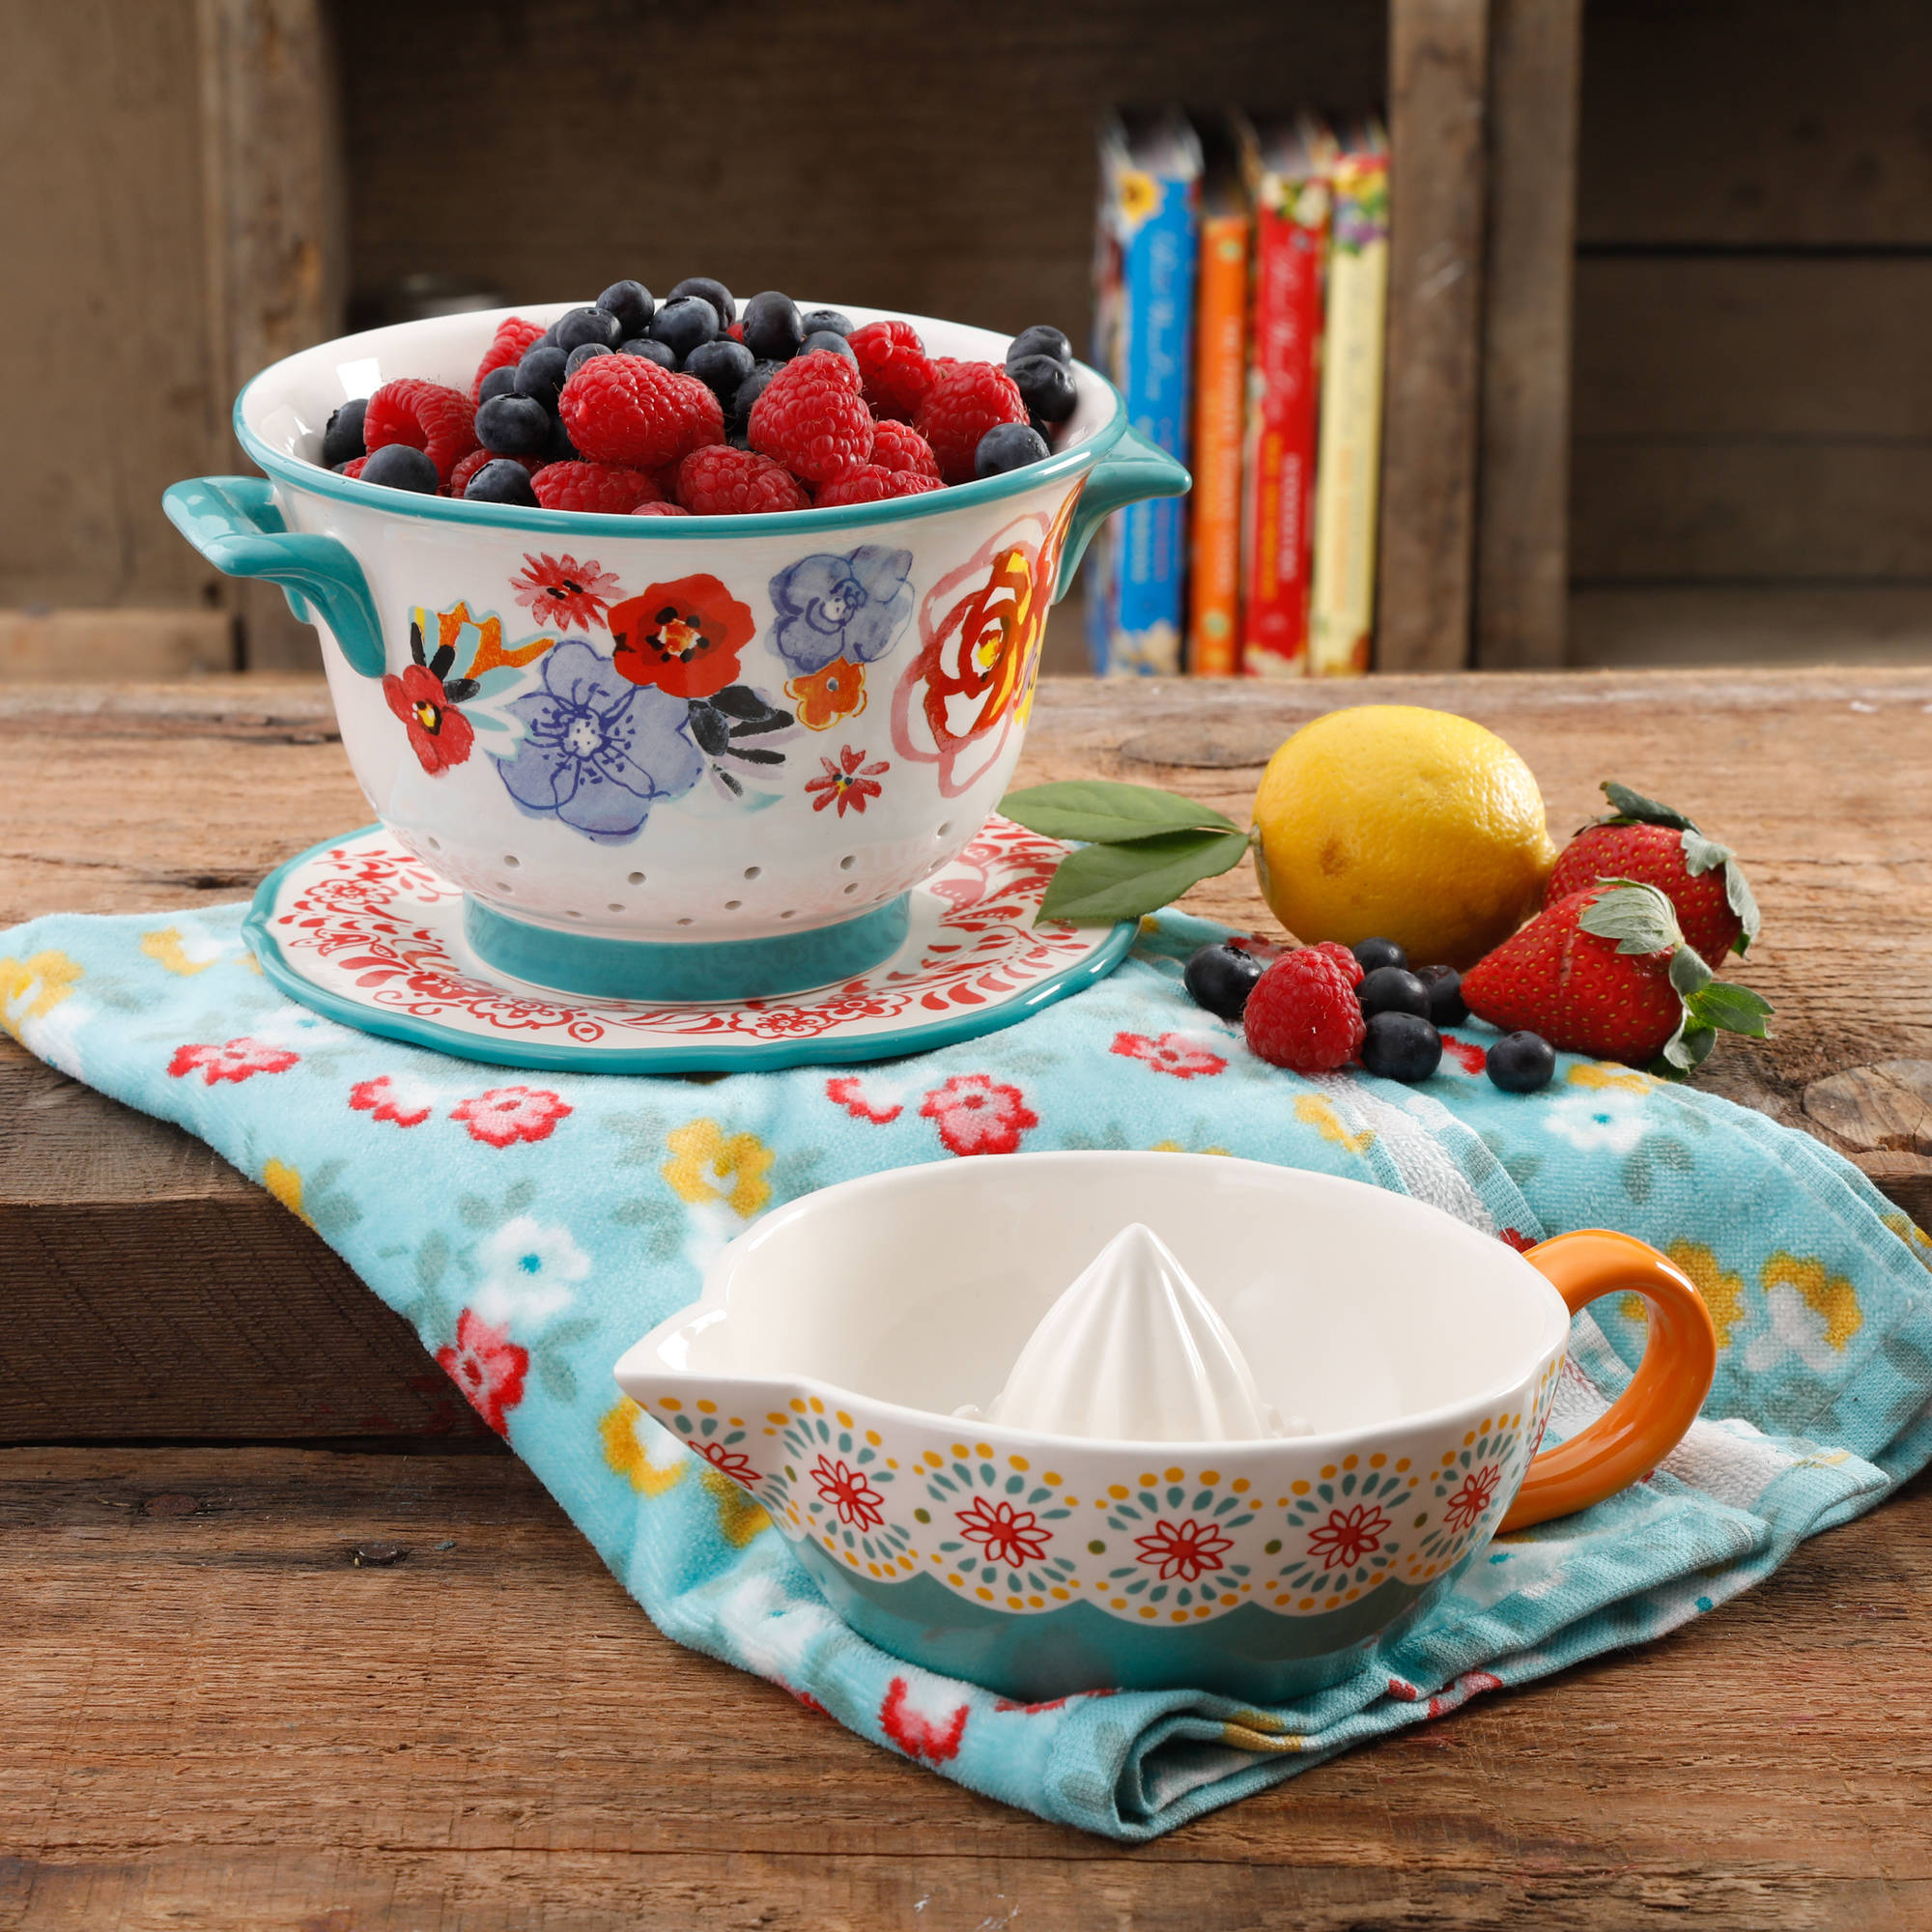 The Pioneer Woman Flea Market 3-Piece Berry Colander and Juicer Set